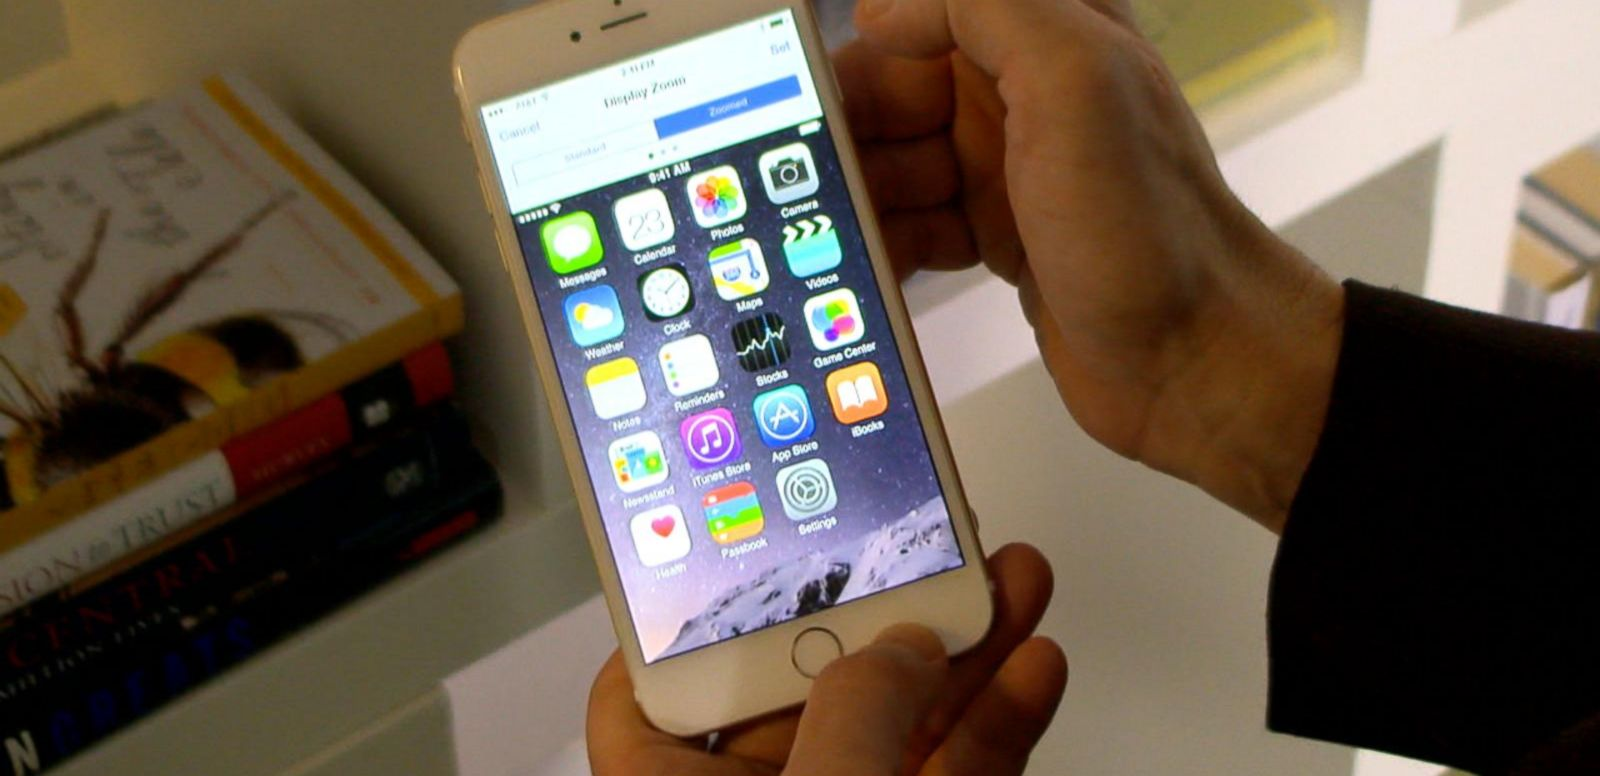 iPhones Can Be Crashed With One Specific Line of Arabic Characters and Symbols